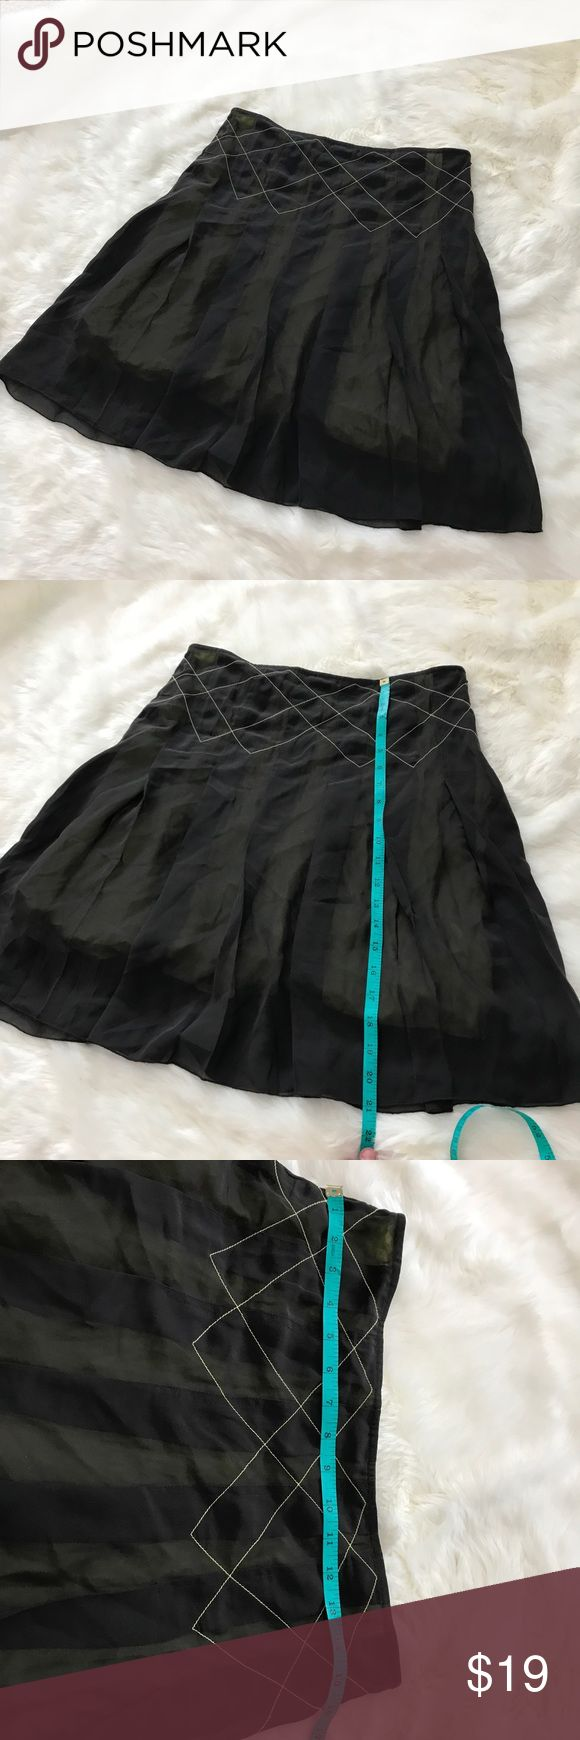 Urban Outfitters Lux Brown Yellow Pleated Skirt 5 EUC Urban Outfitters Lux Skirt Brown And Neon Yellow Pleated Skirt 5. Brown with neon lining. Side zipper. Size 5. No flaws. See pictures for measurements Urban Outfitters Skirts Mini